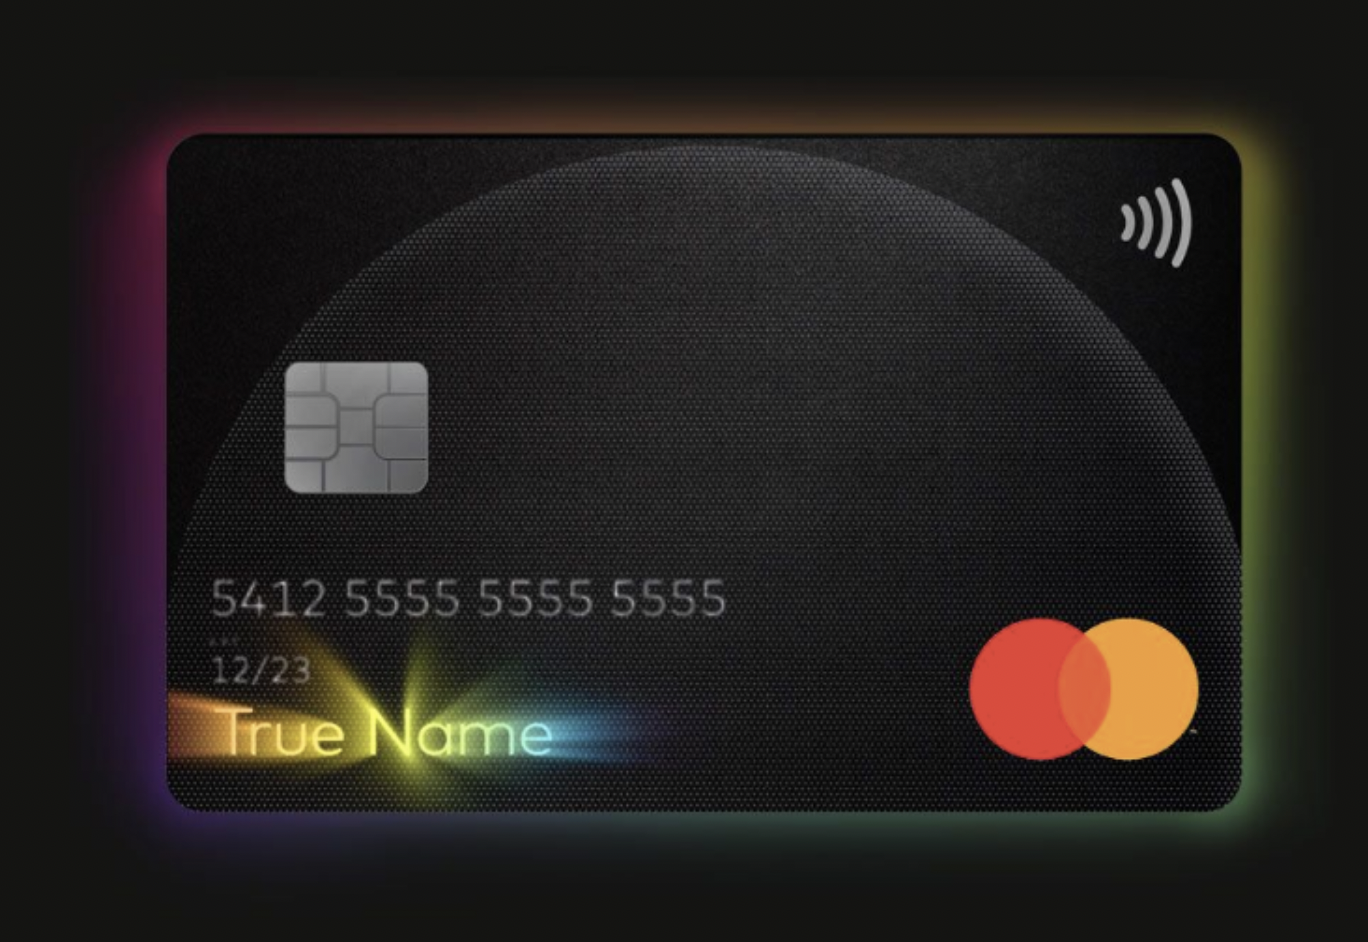 5 things we love about the True Name® feature